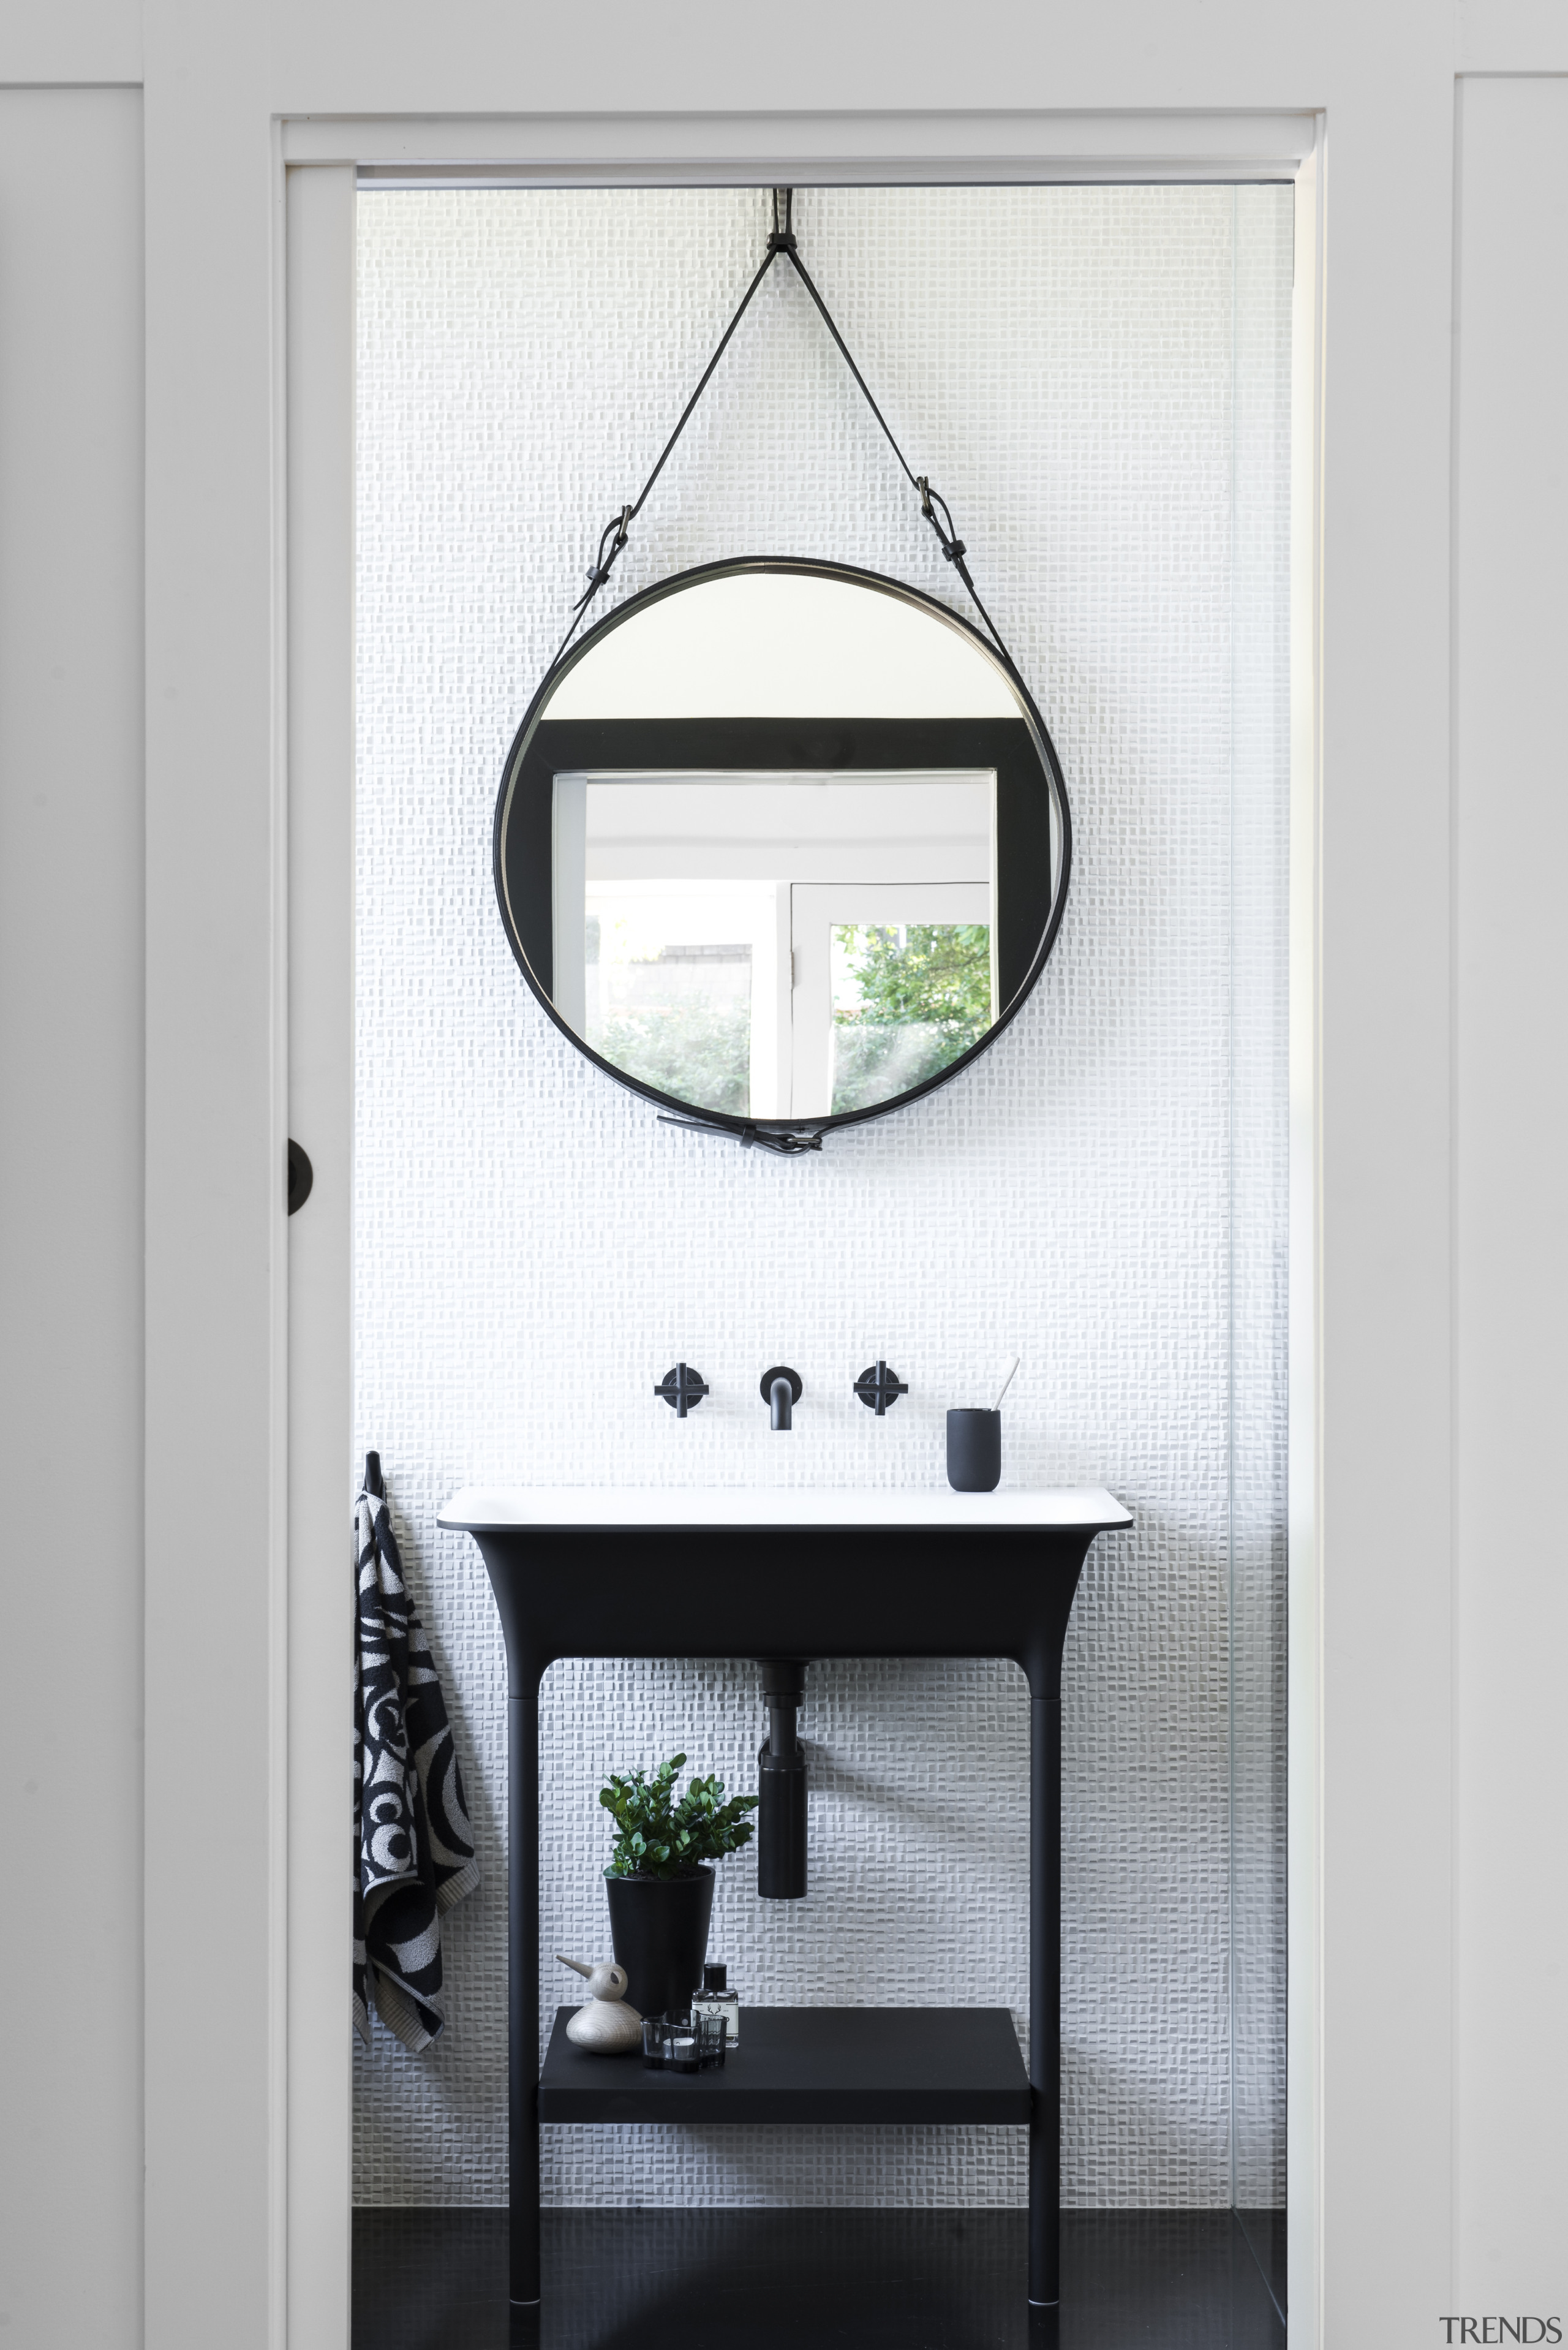 On this bathroom project by Minosa, stepping the mirror, bathroom, table, white, black, freestanding vanity, round mirror, Minosa, Darren Genner